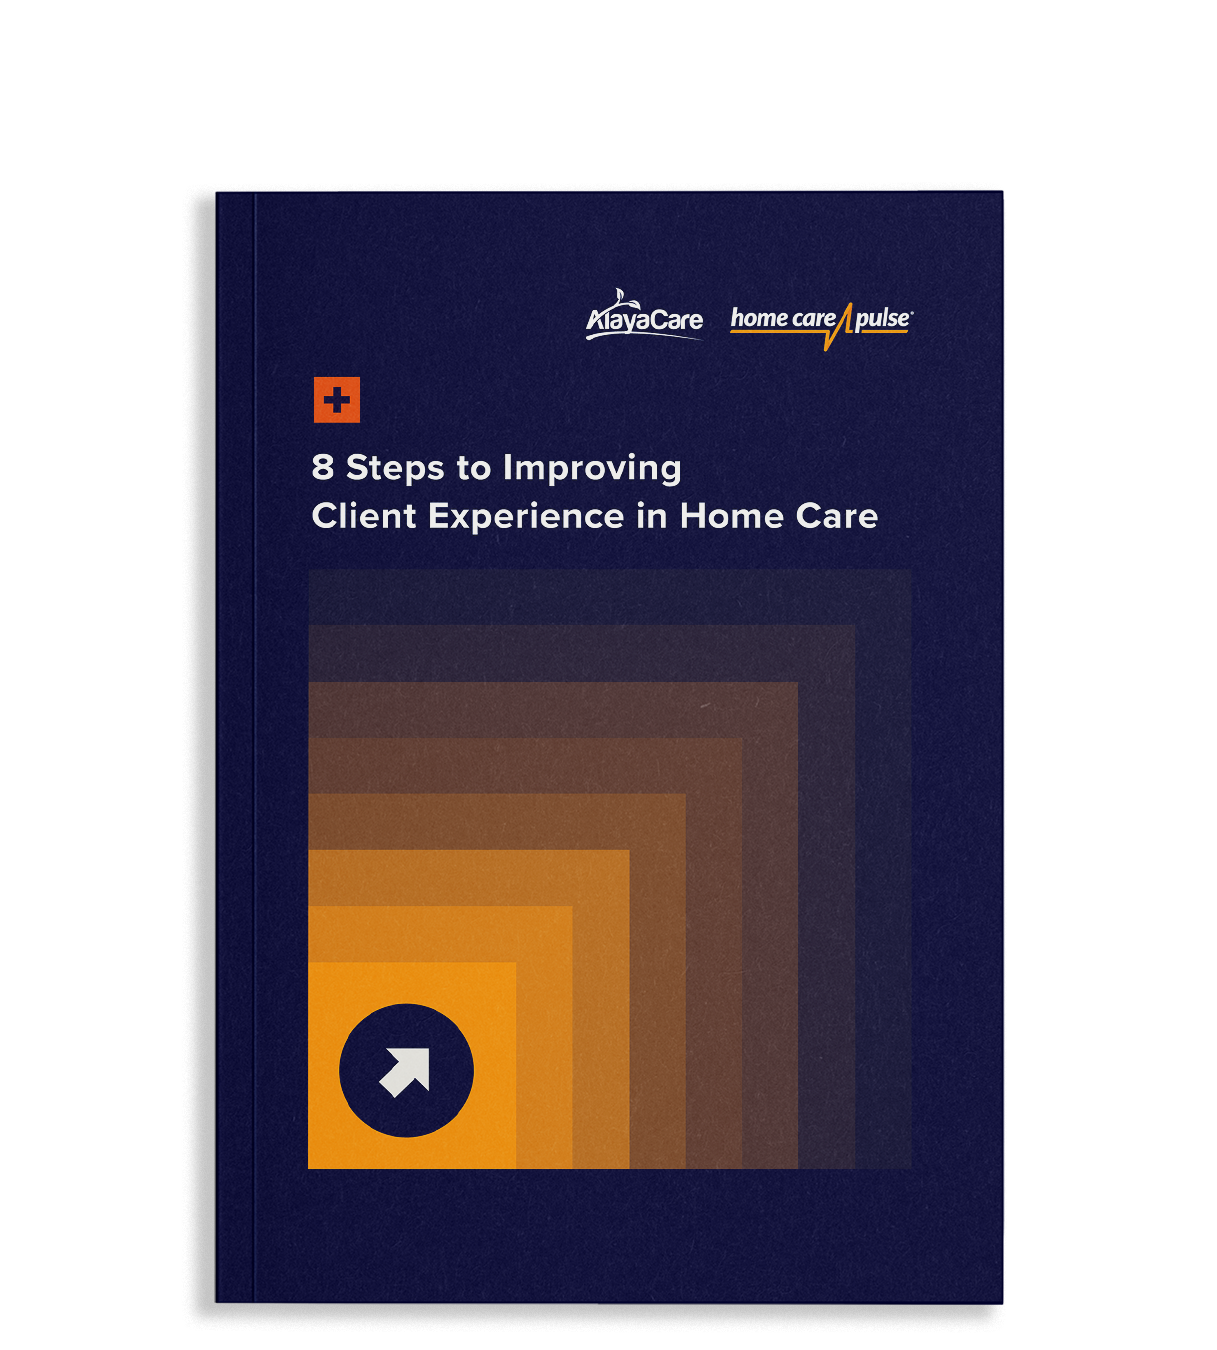 8 steps to improving client experience in home care